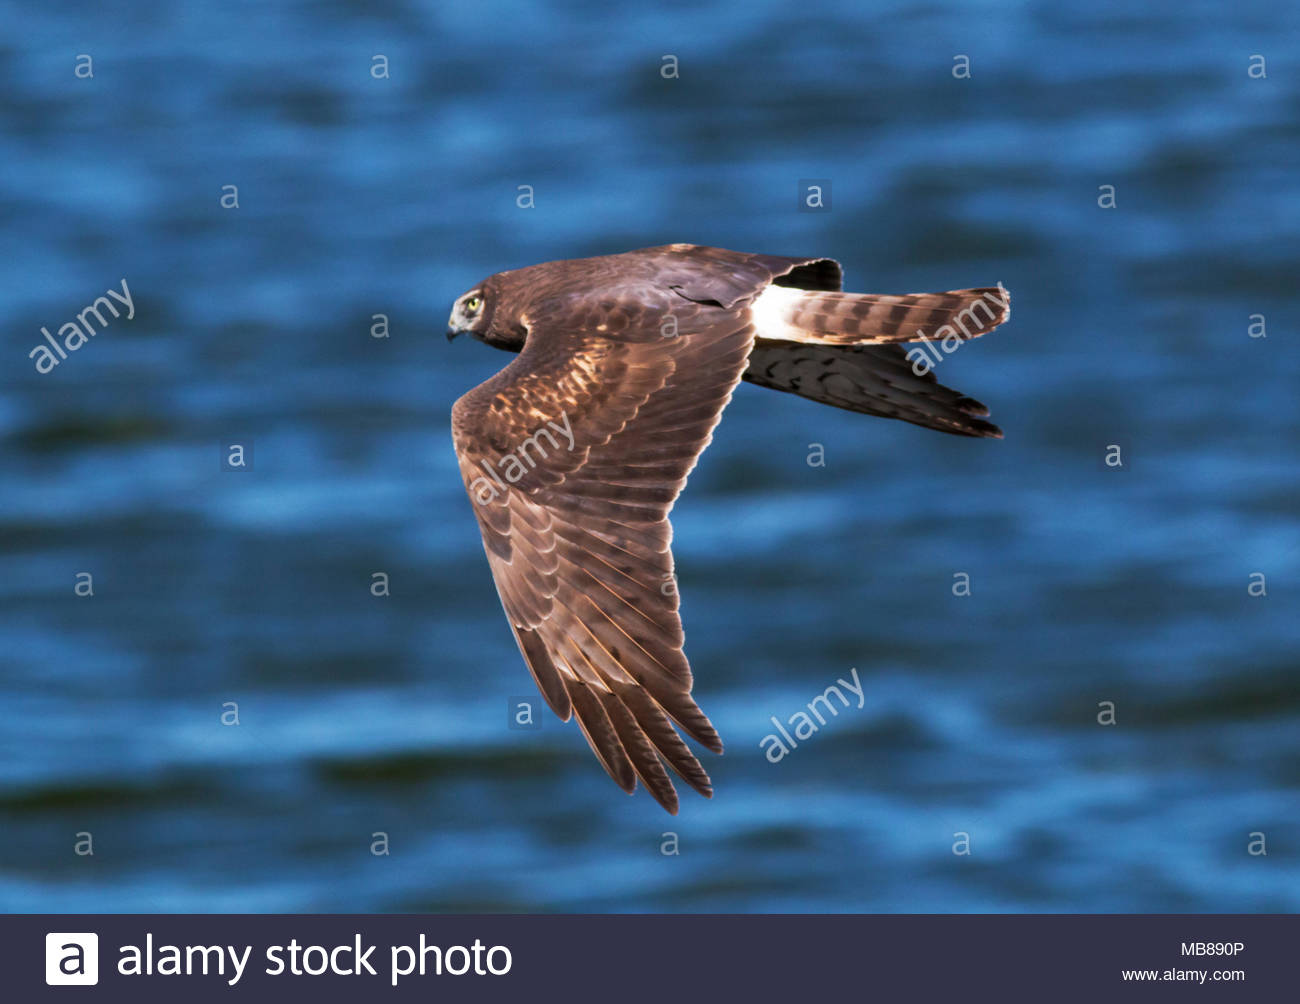 northern-harrier-circus-cyaneus-female-marsh-hawk-flying-in-arizona-usa-MB890P.jpg